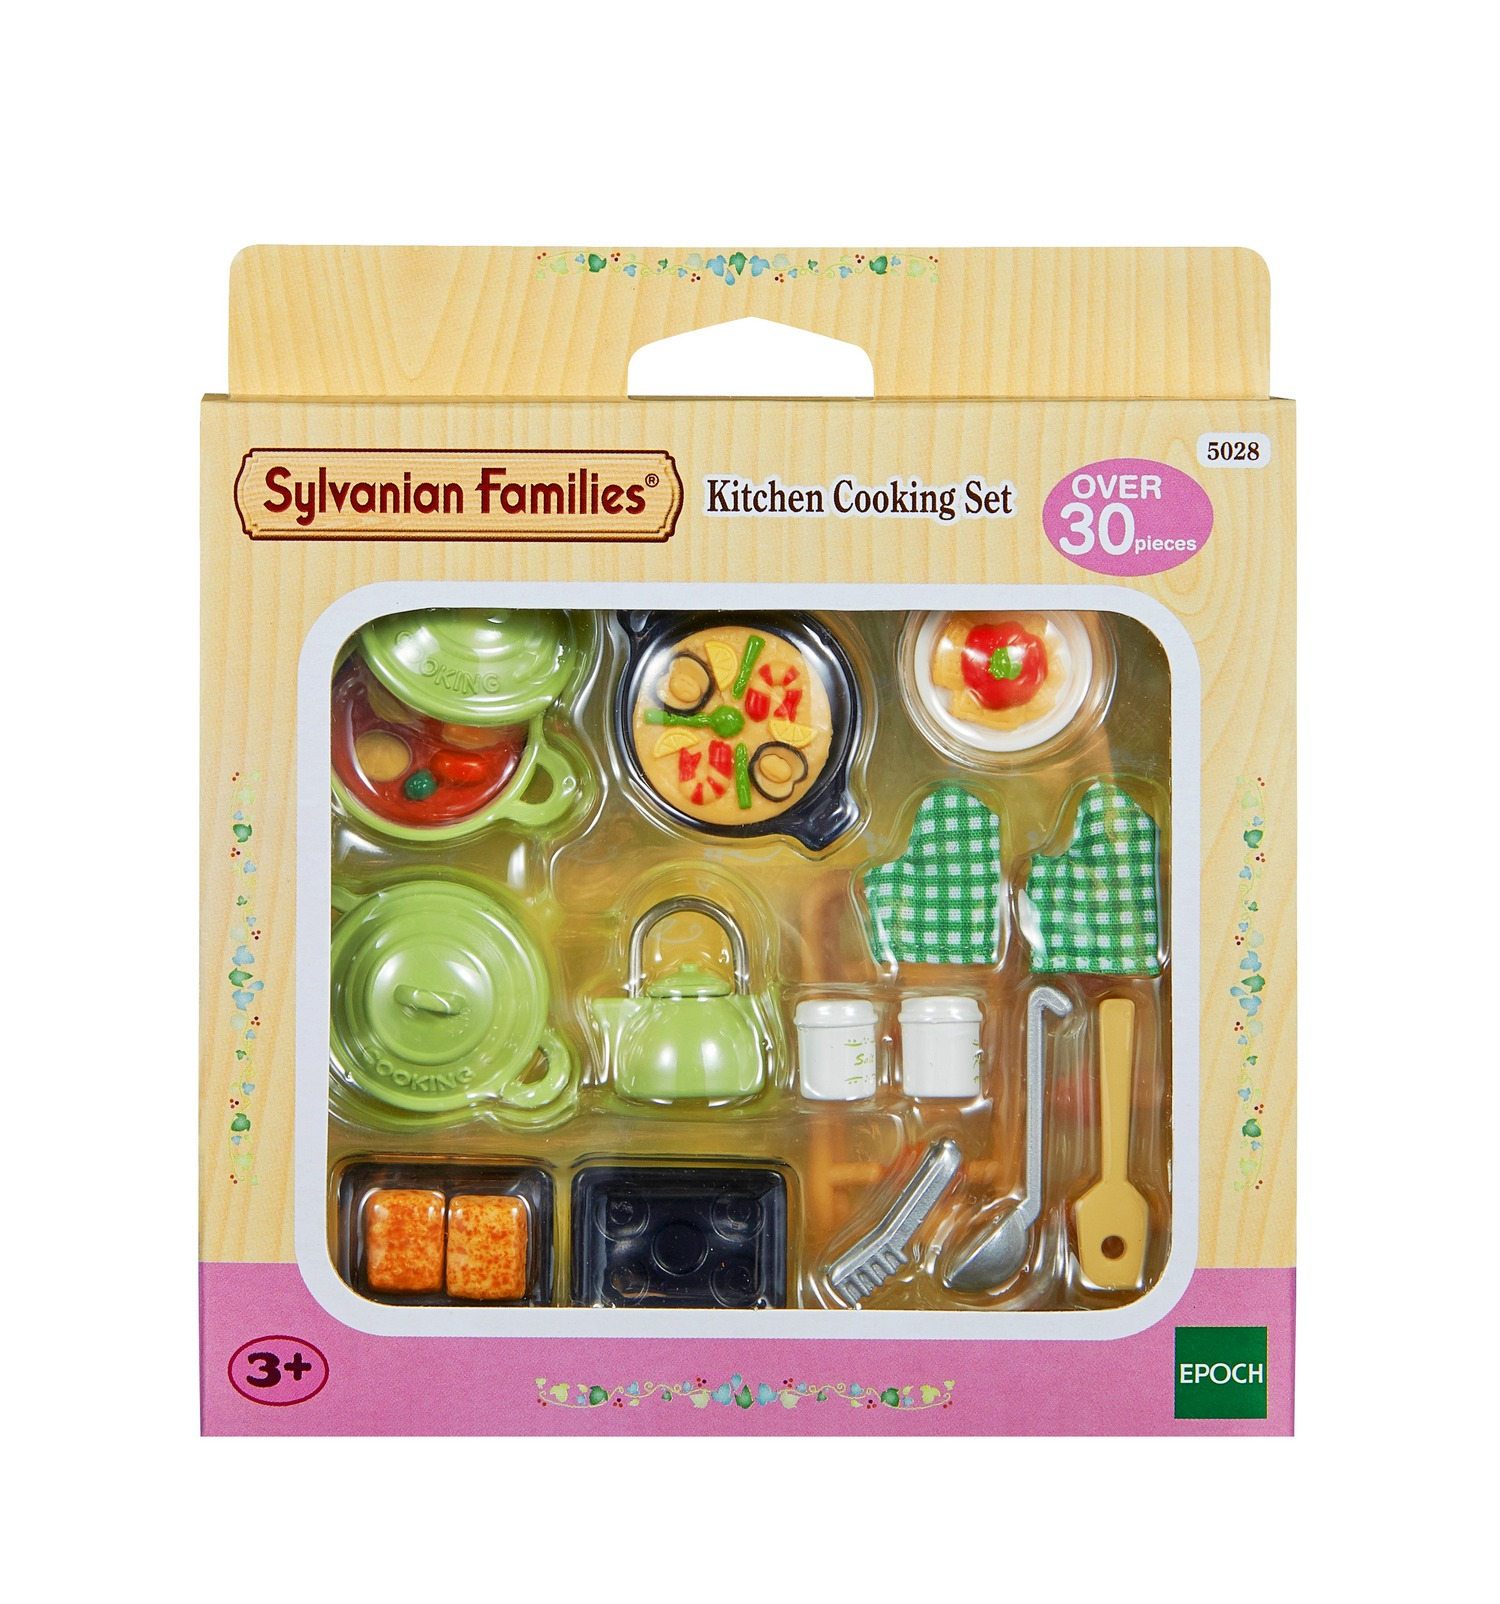 Sylvanian families kitchen cooking set ebay for Kitchen kitchen set